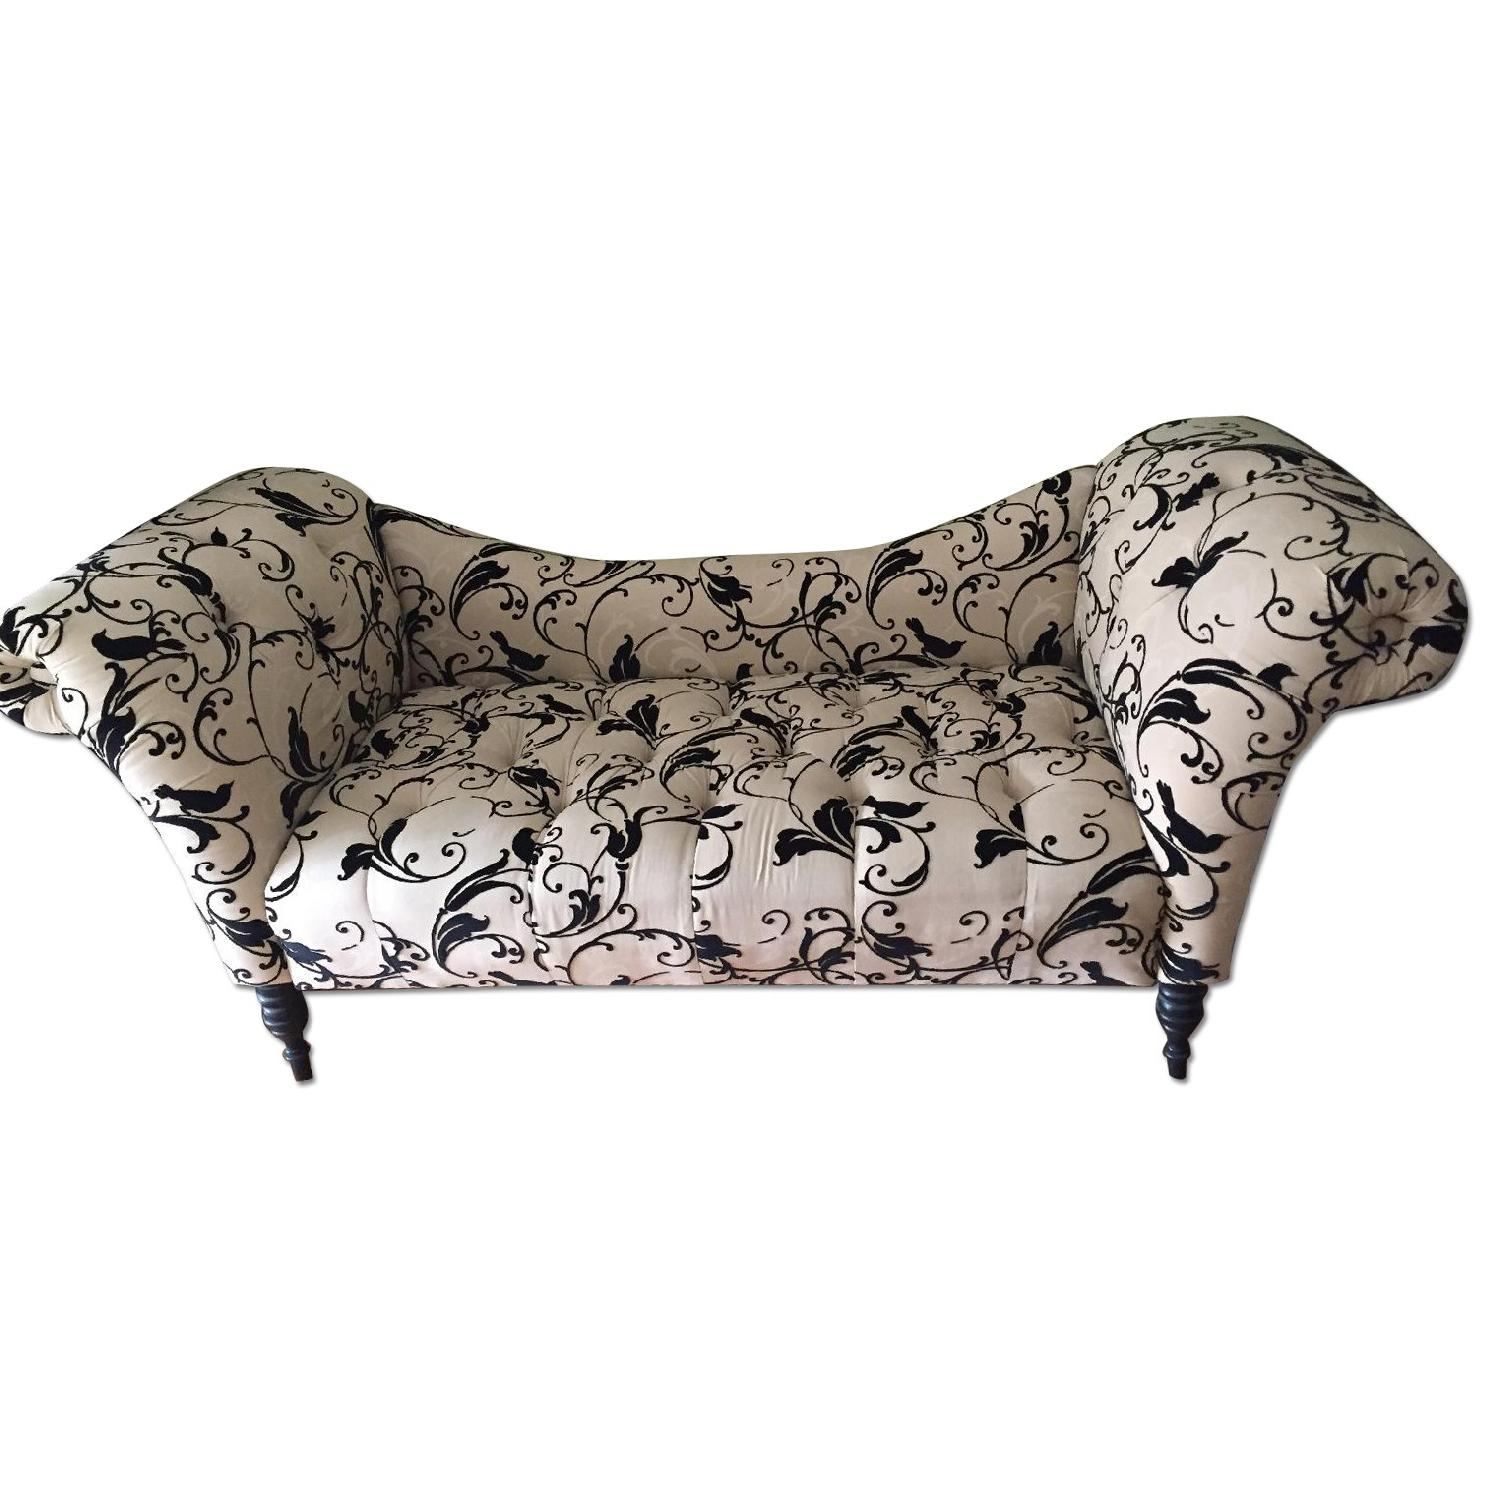 Urban Outfitters Printed Chaise Lounge in Black & Tan - image-0